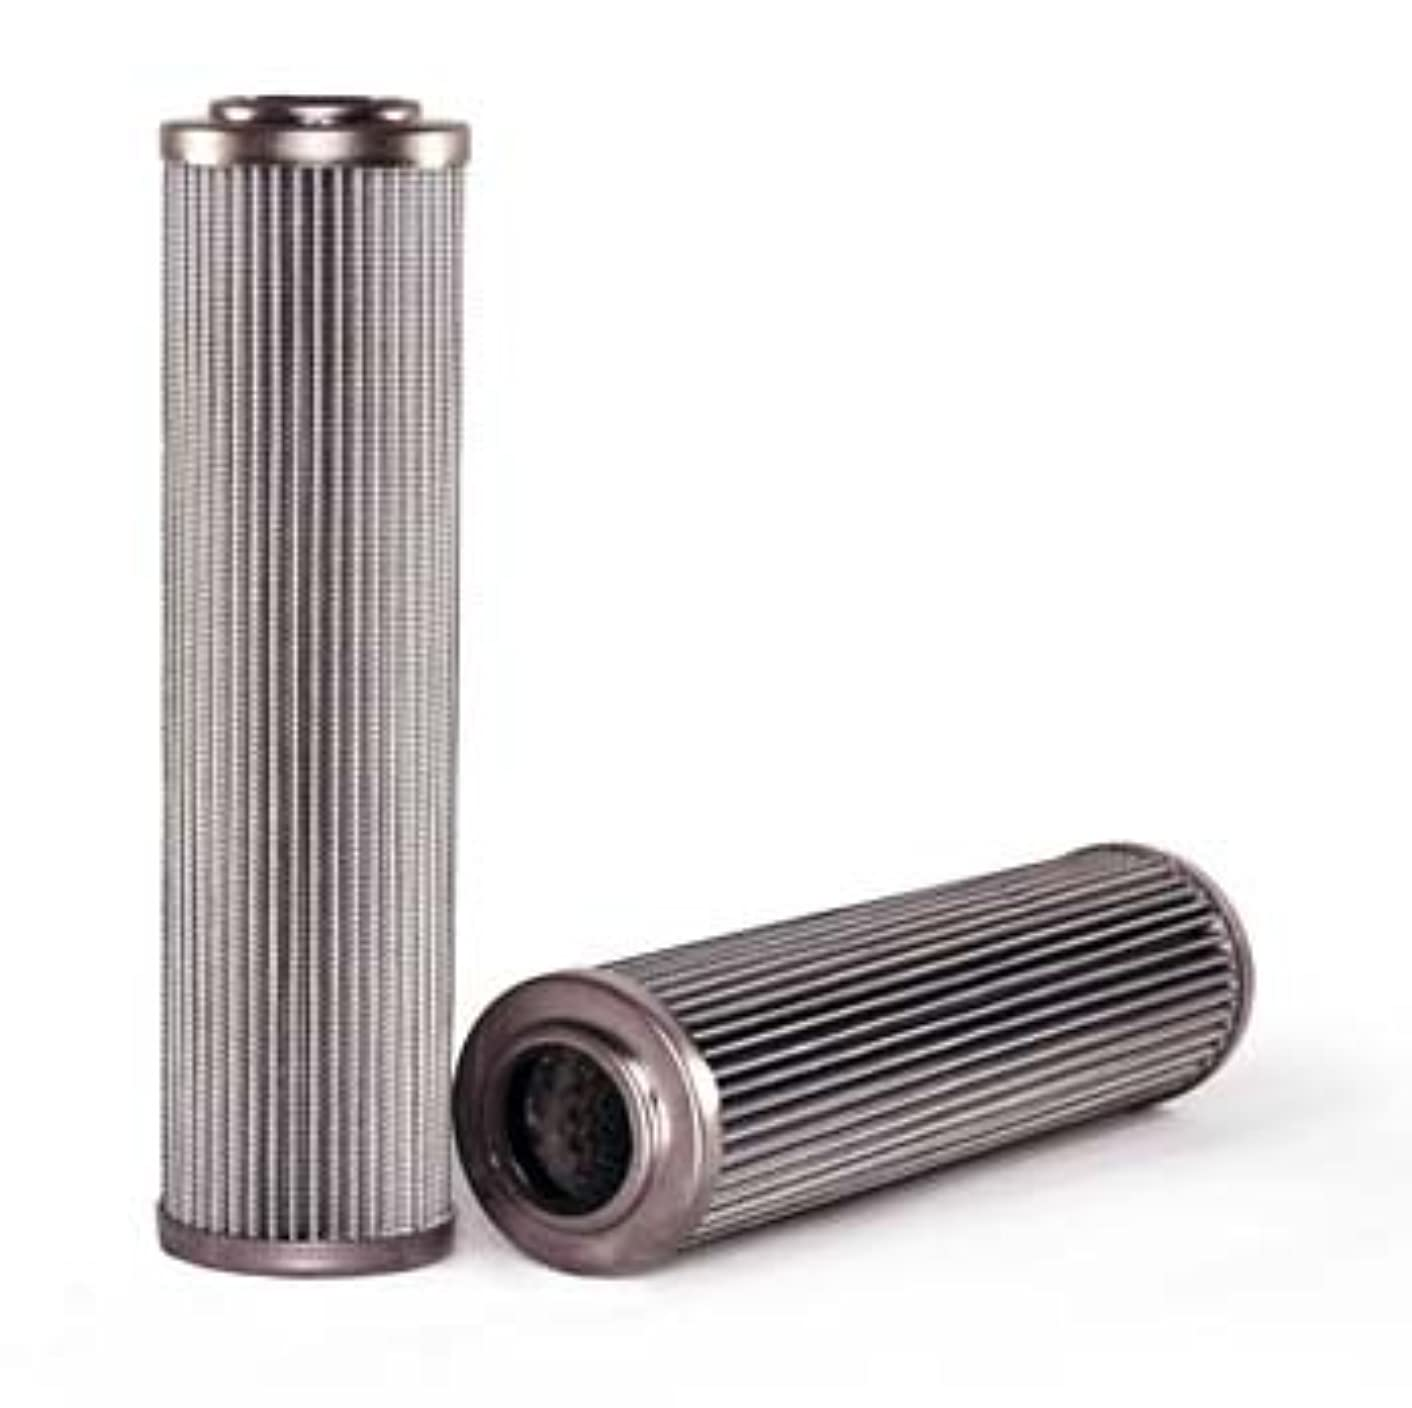 Killer Filter Replacement for QUALITY FILTRATION QH9800A25B04